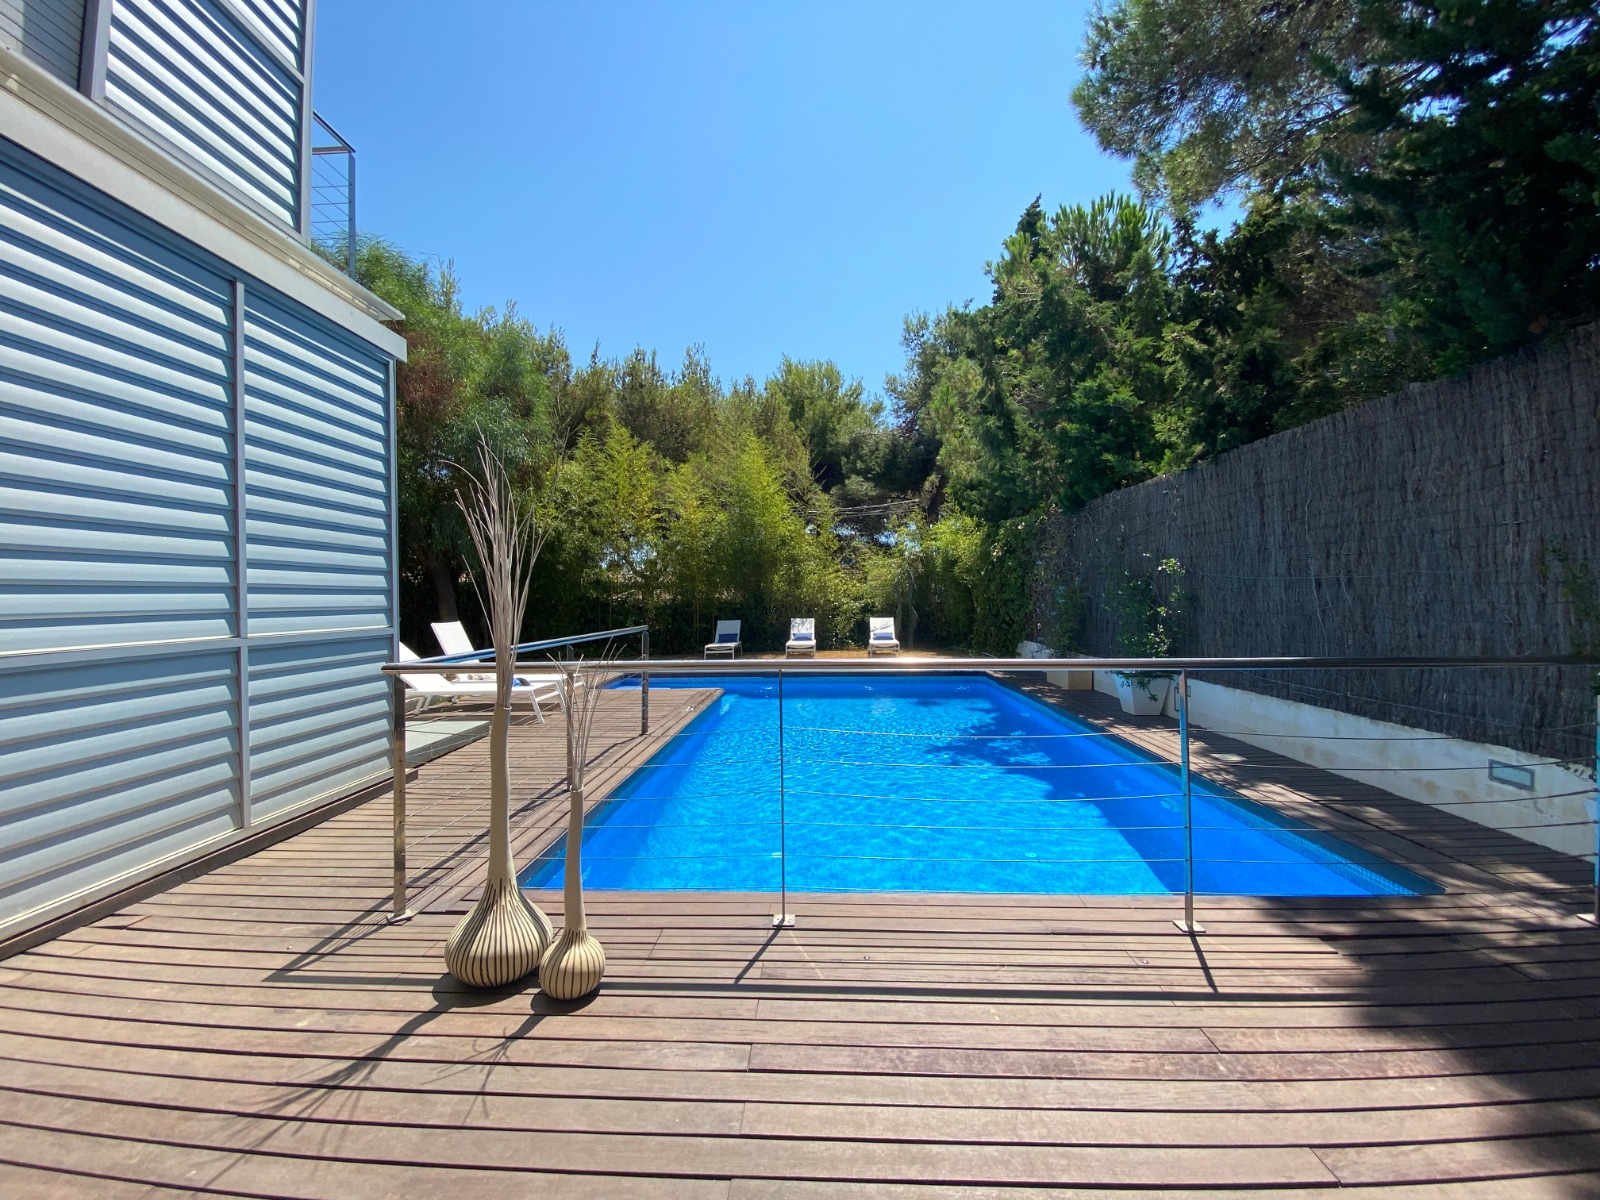 House to rent In Sitges by MyRentalHost